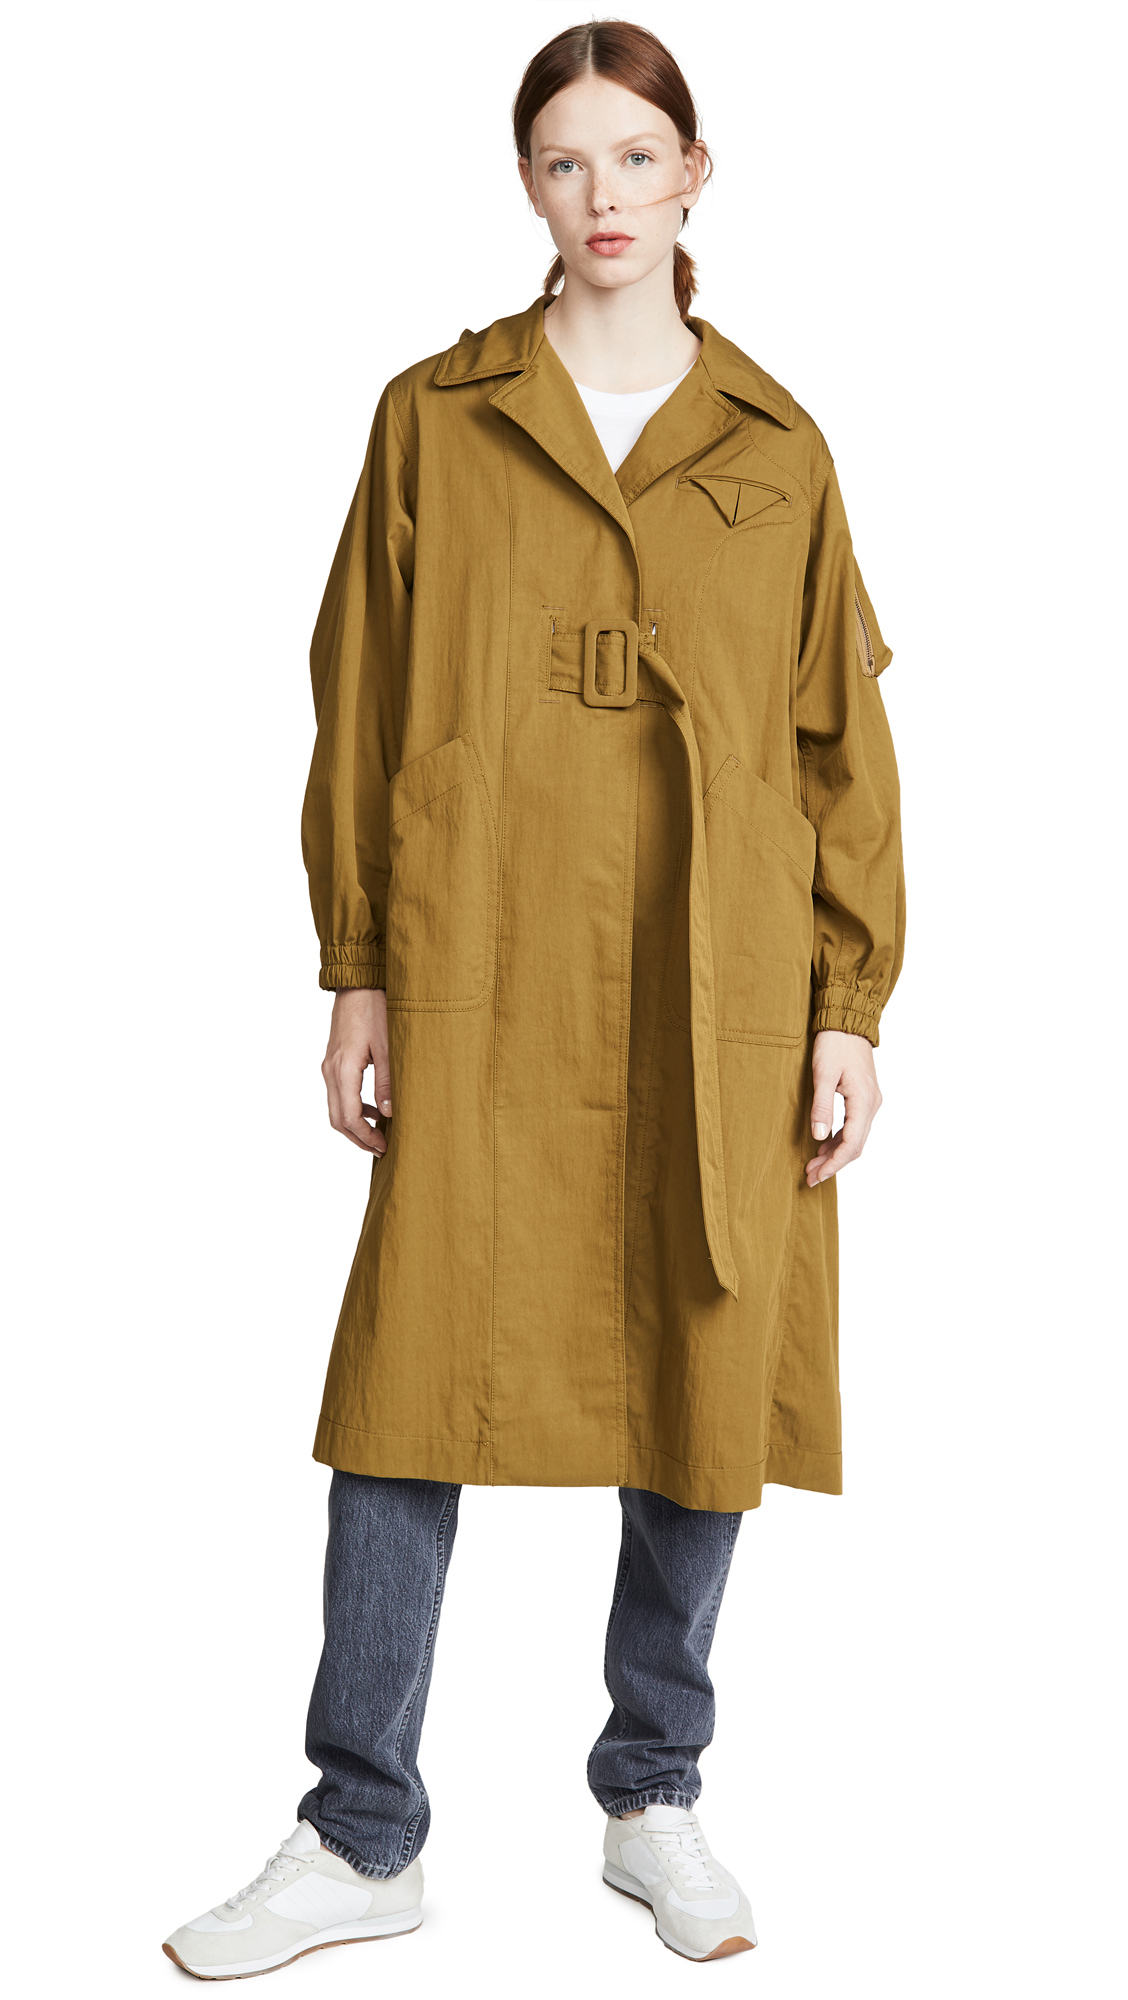 Buy TRE by Natalie Ratabesi The Gaia Coat online beautiful TRE by Natalie Ratabesi Jackets, Coats, Trench Coats